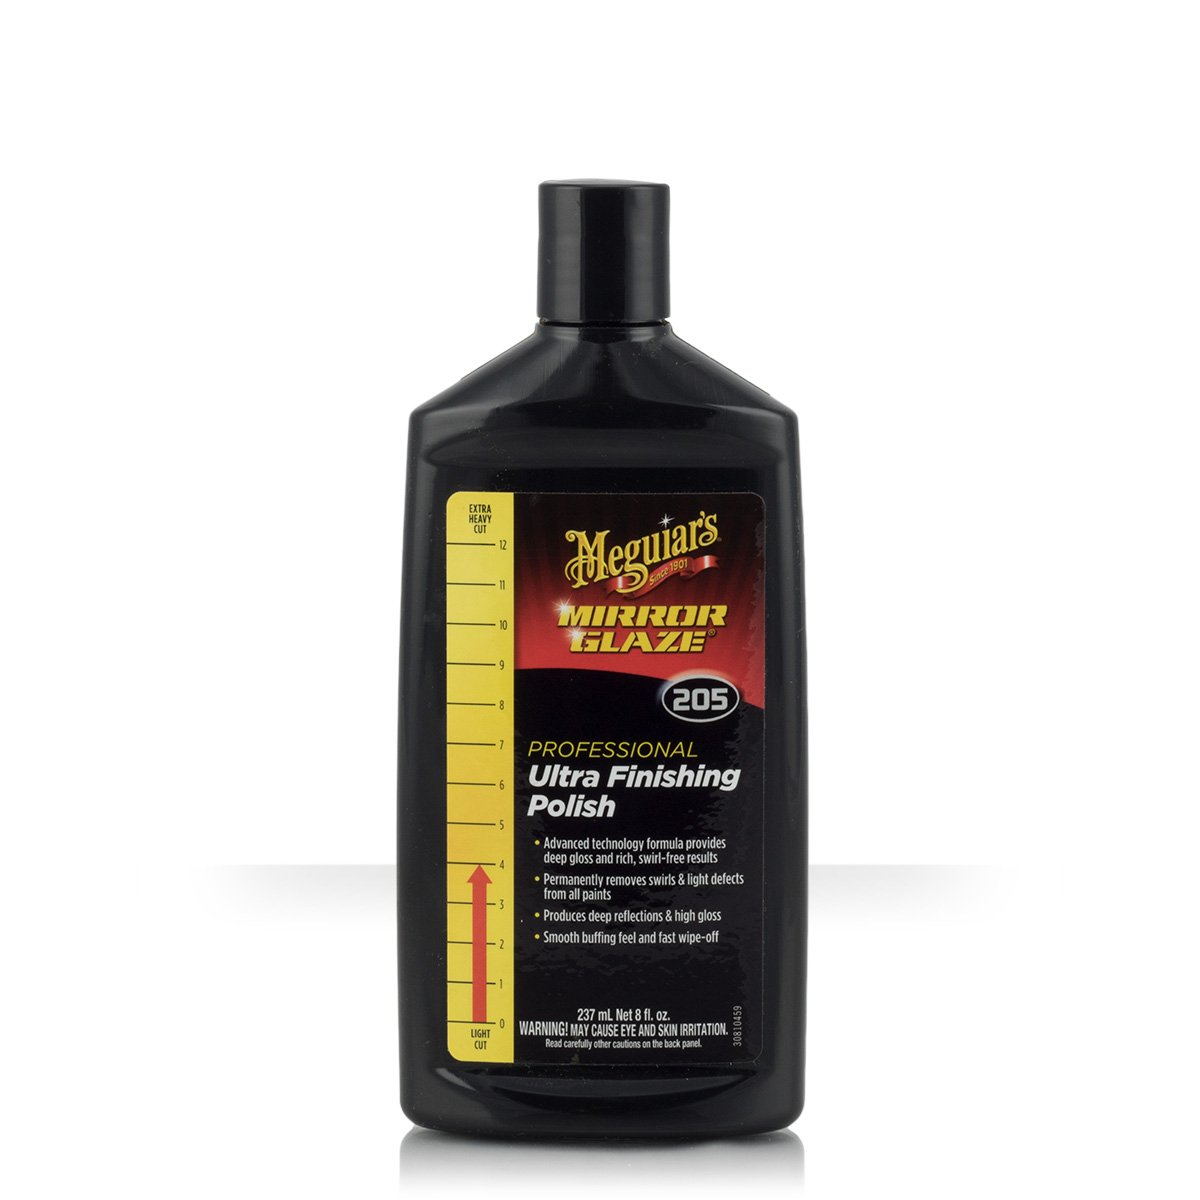 Meguiars 205 Ultra Finishing Polish